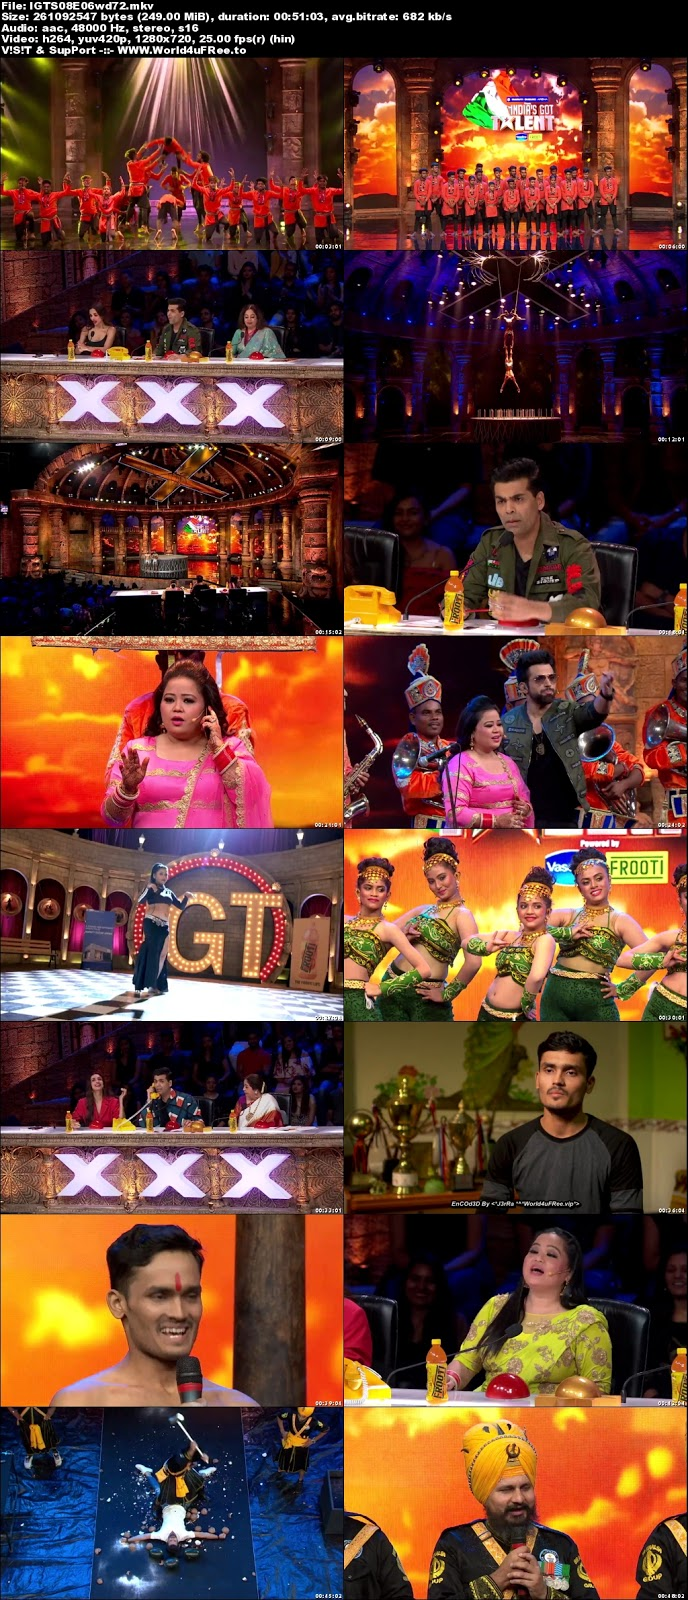 India's Got Talent S08 Episode 06 720p WEBRip 250mb x264 world4ufree.vip tv show India's Got Talent  Season 8 Star Plus tv show HD 720p free download or watch online at world4ufree.vip